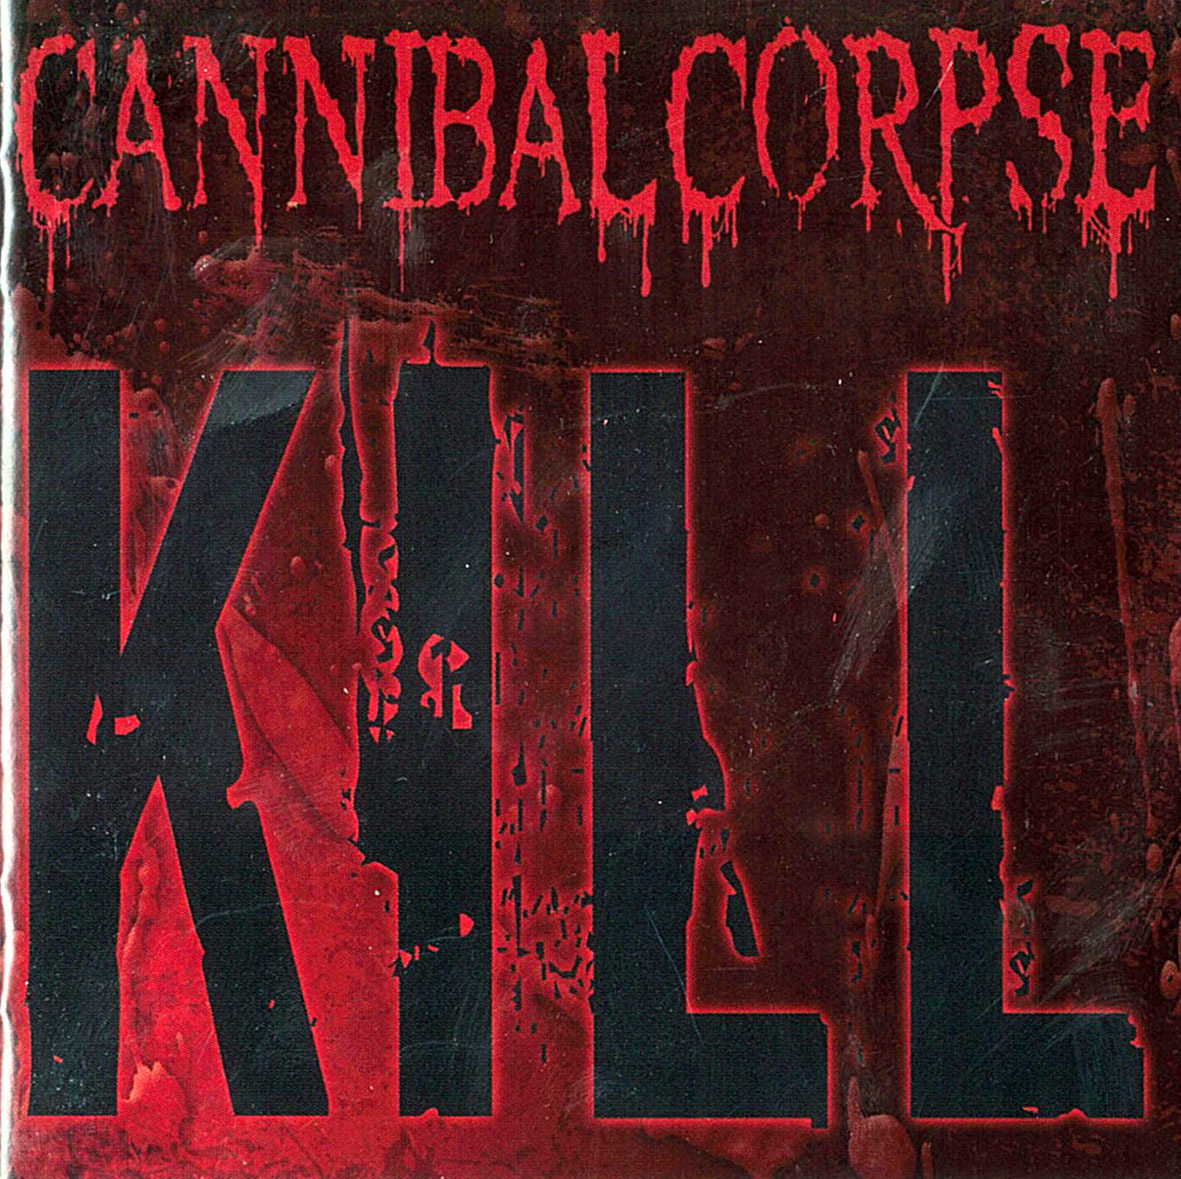 death metal cannibal Corpse HD Wallpaper